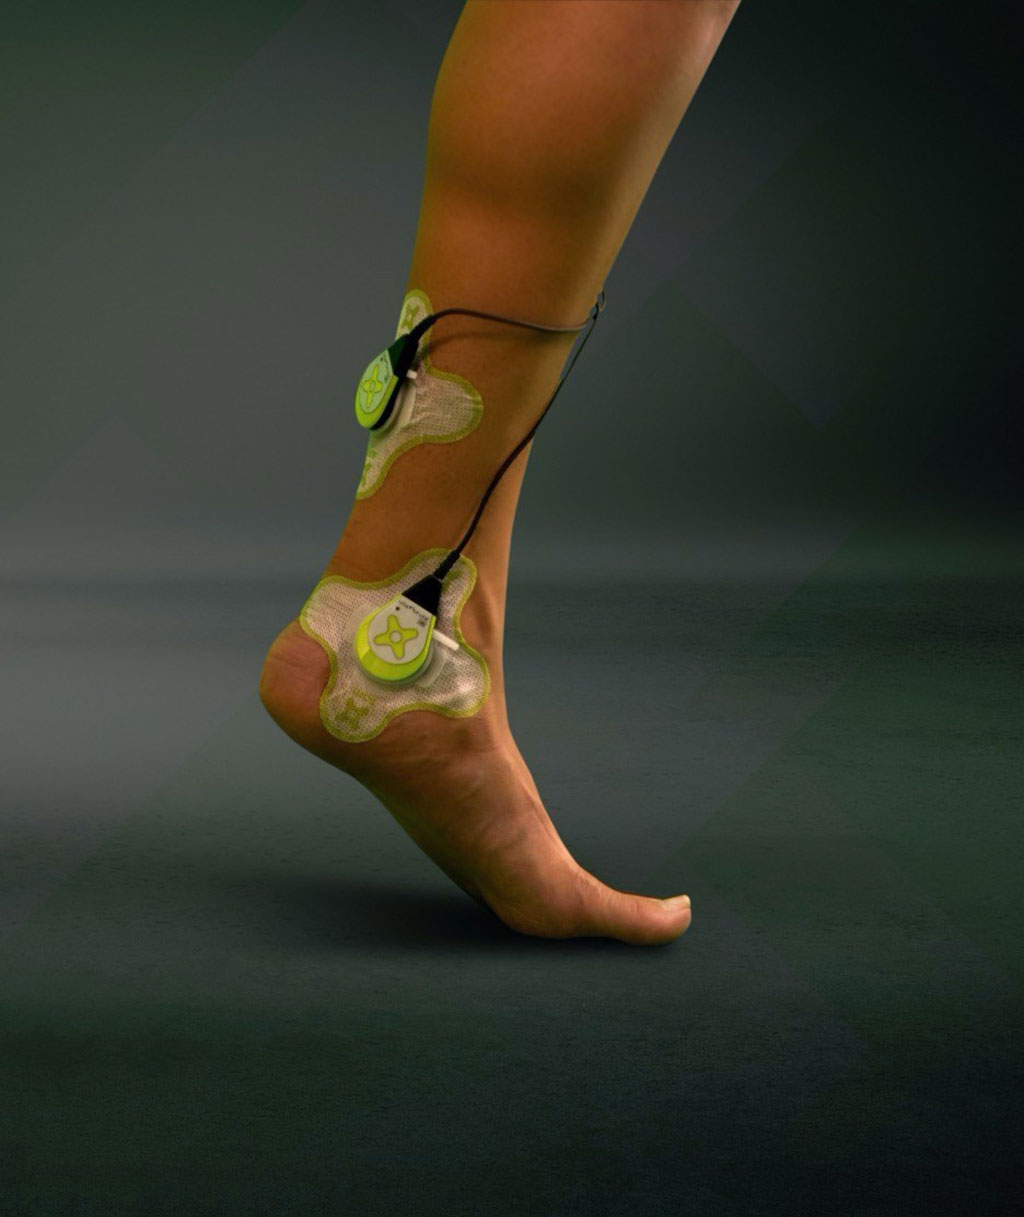 Image: The sam applied to Achilles tendon injury to stimulate collagen-matrix rebuilding (Photo courtesy of ZetrOZ Systems)